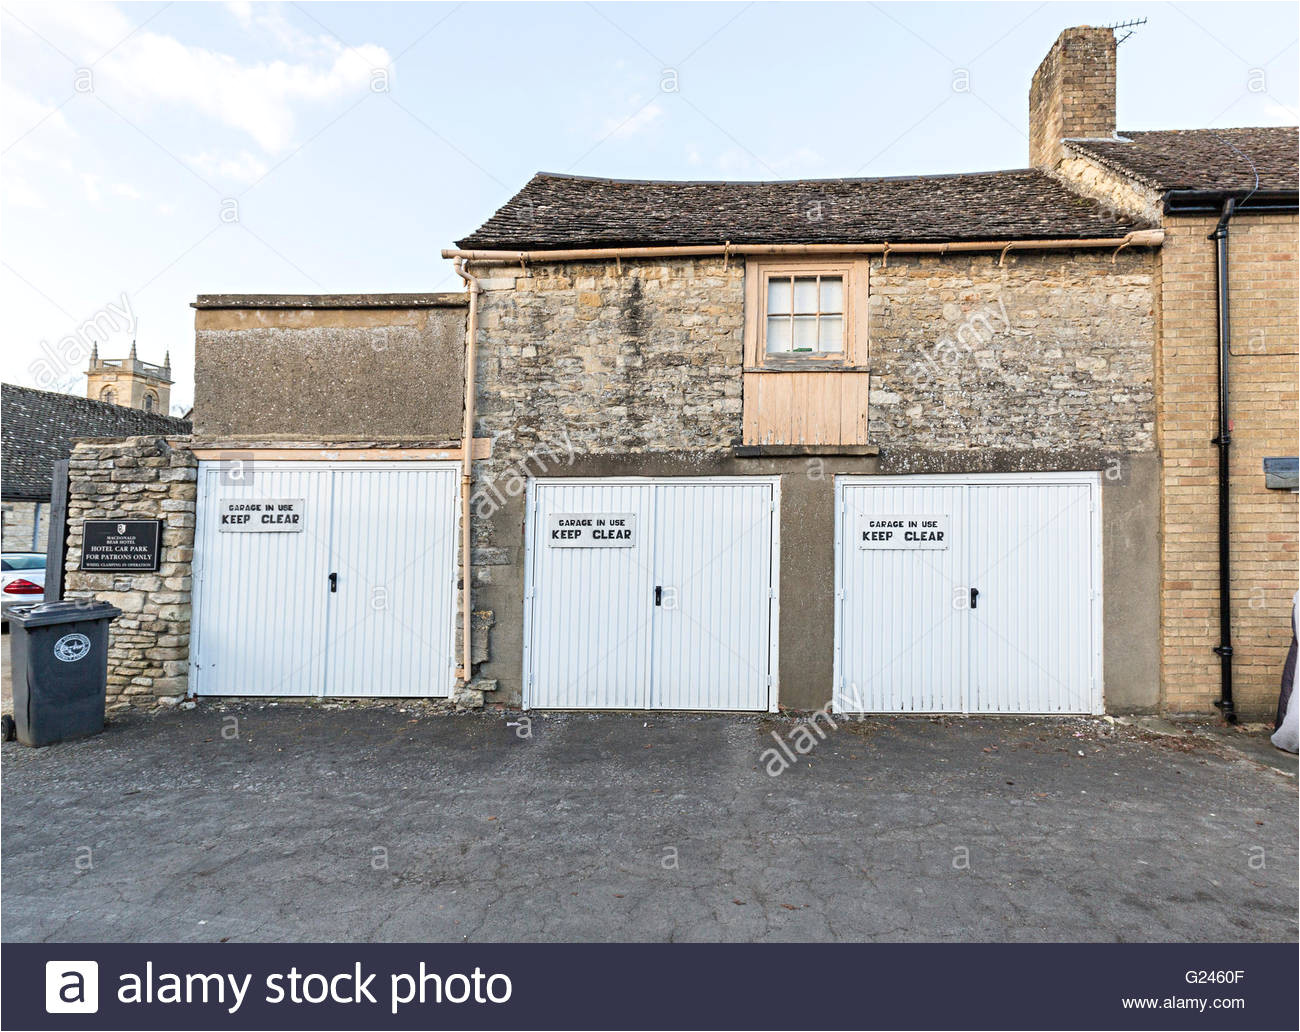 three garages with keep clear signs woodstock oxfordshire england uk stock